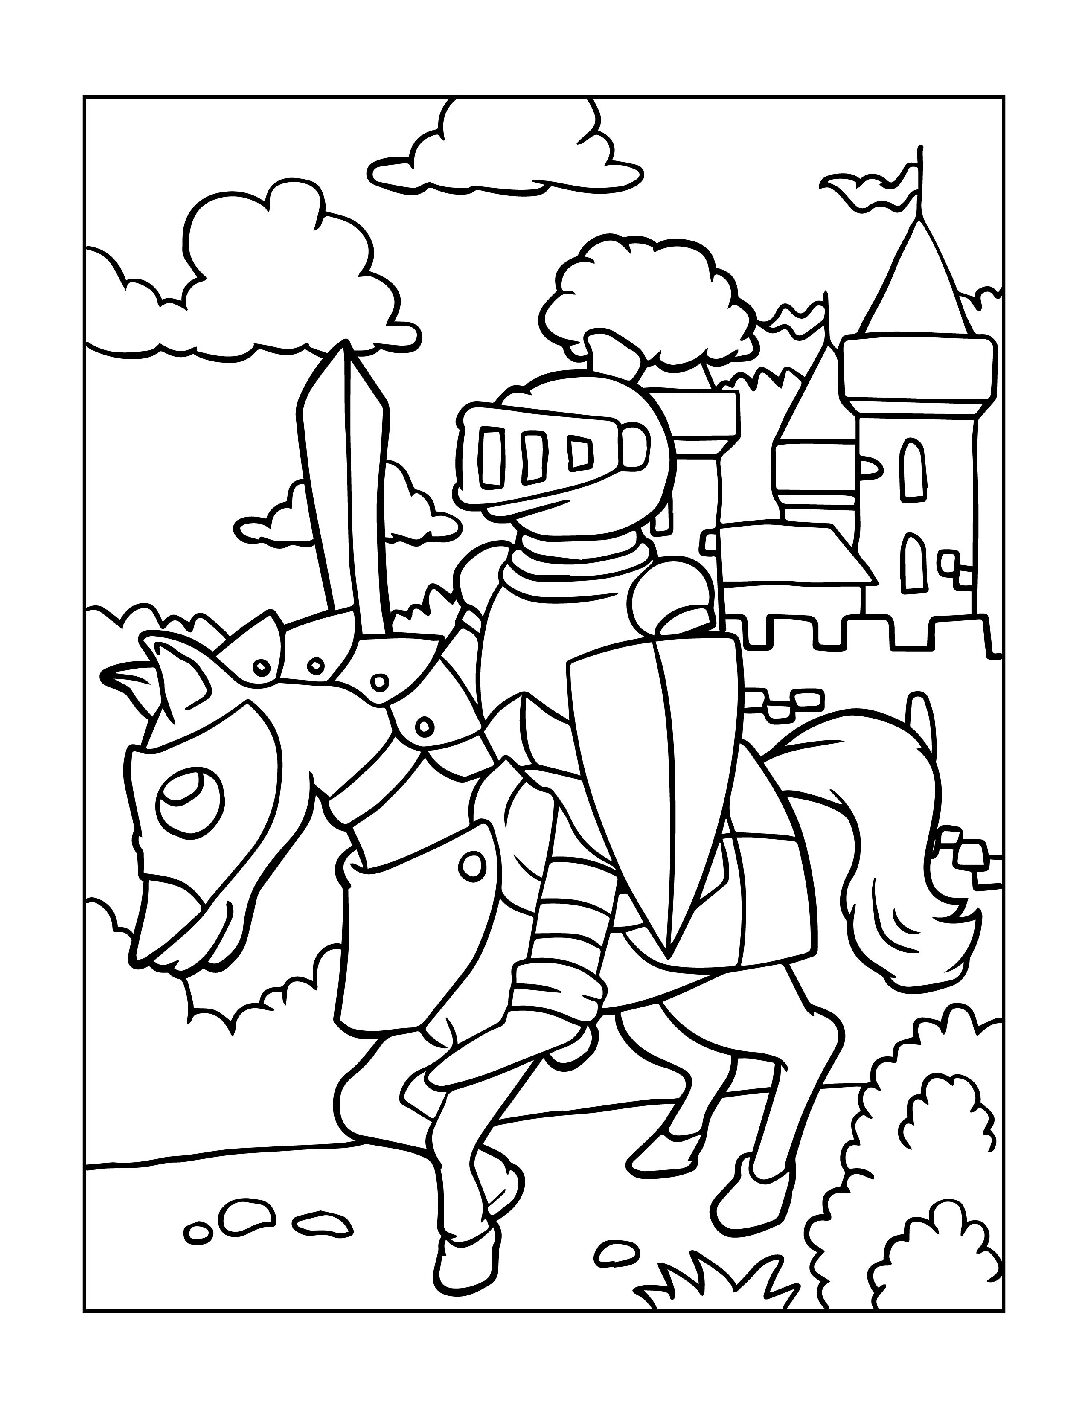 Coloring-Pages-Pirates-and-Knights-for-Boys-2-01-pdf Free Printable Pirates &  Knights Colouring Pages